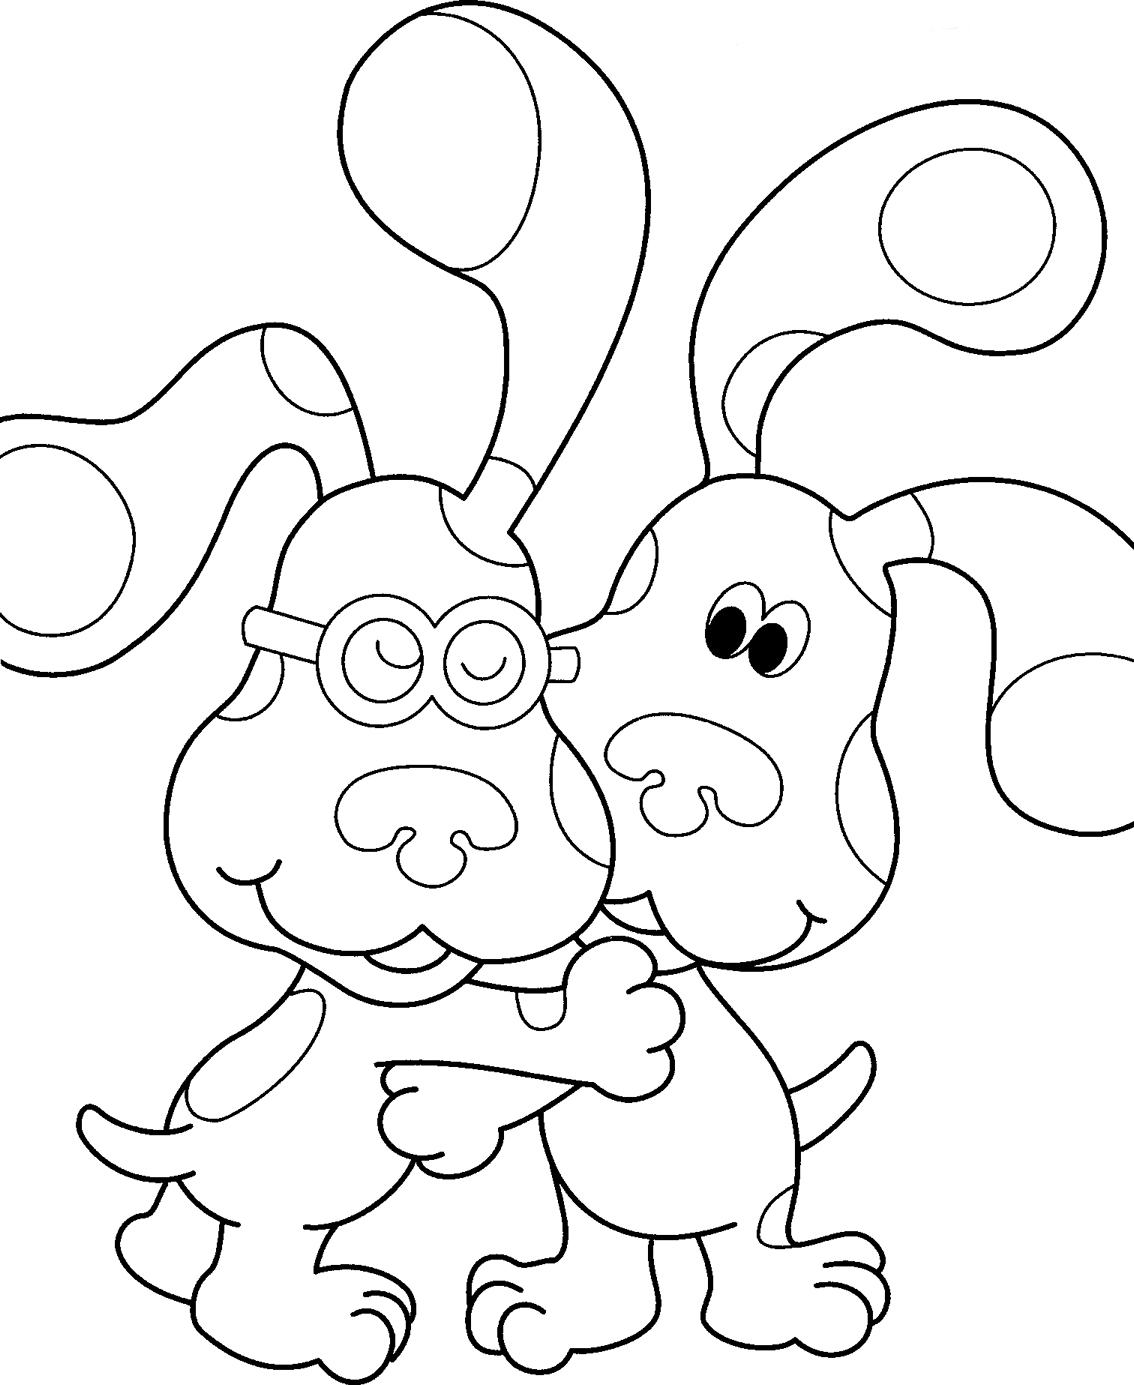 Nick Jr Coloring Pages 6 Coloring Kids Nickjr Coloring Pages